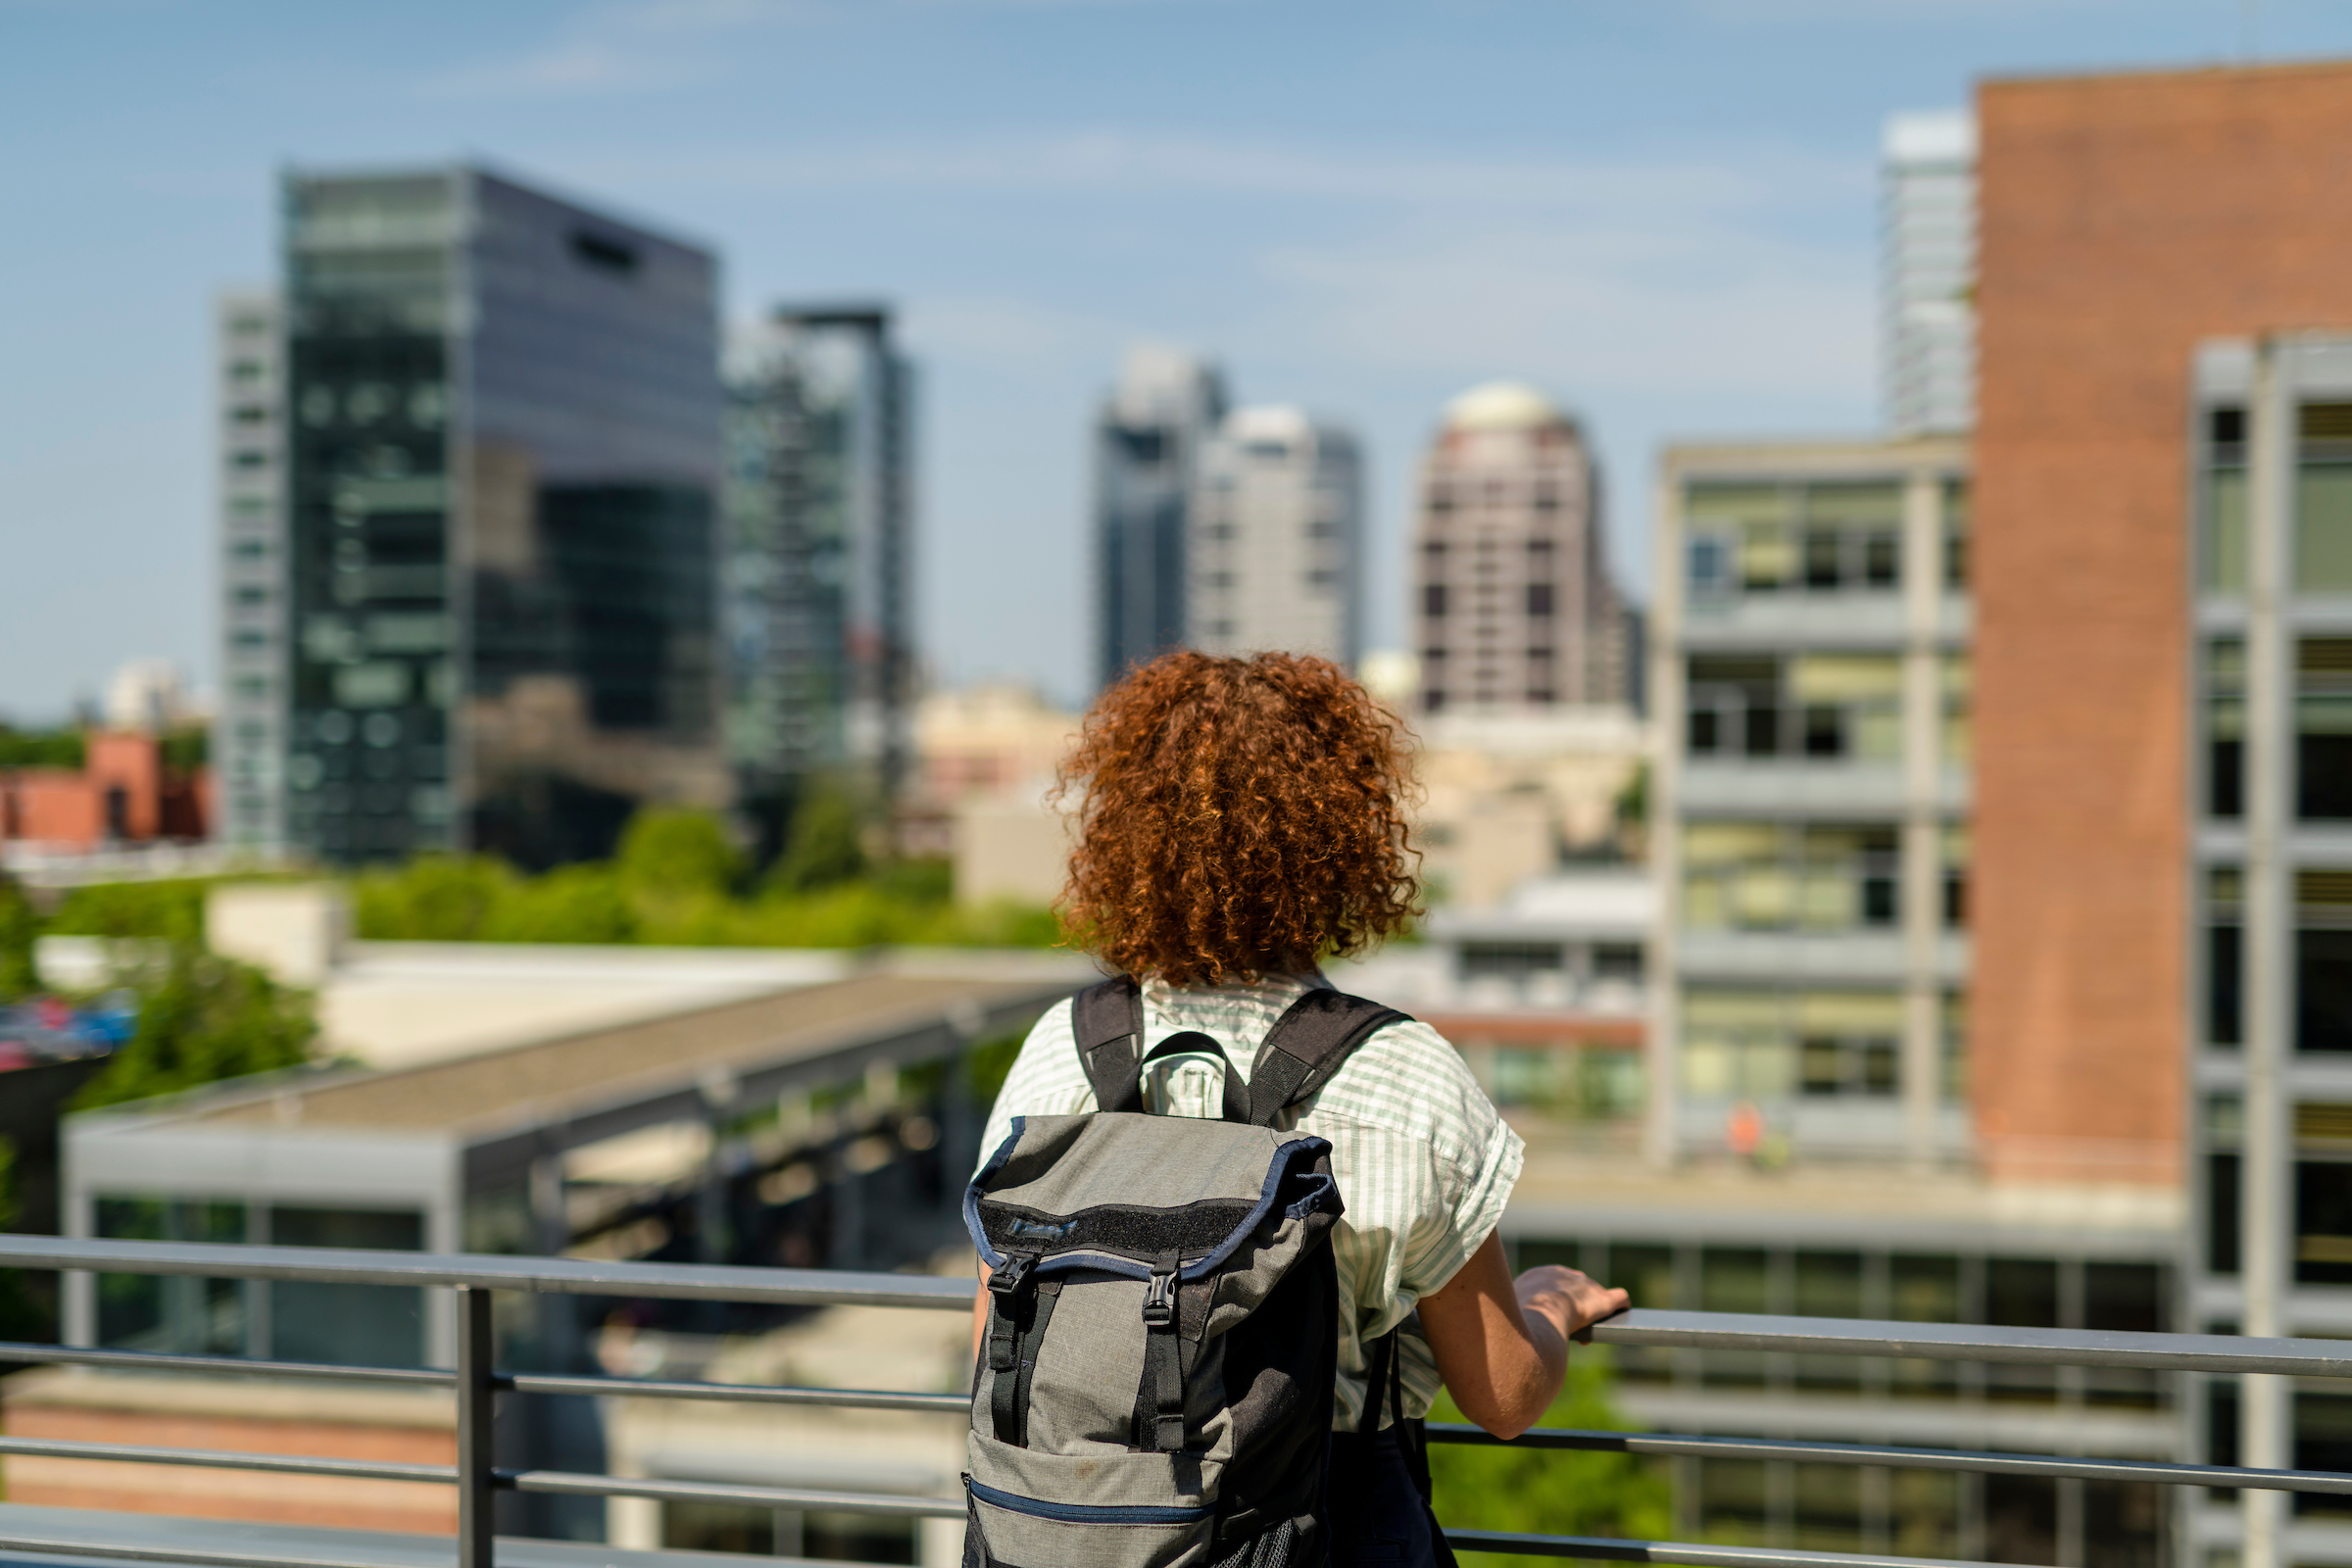 Back of woman with backpack looking at city